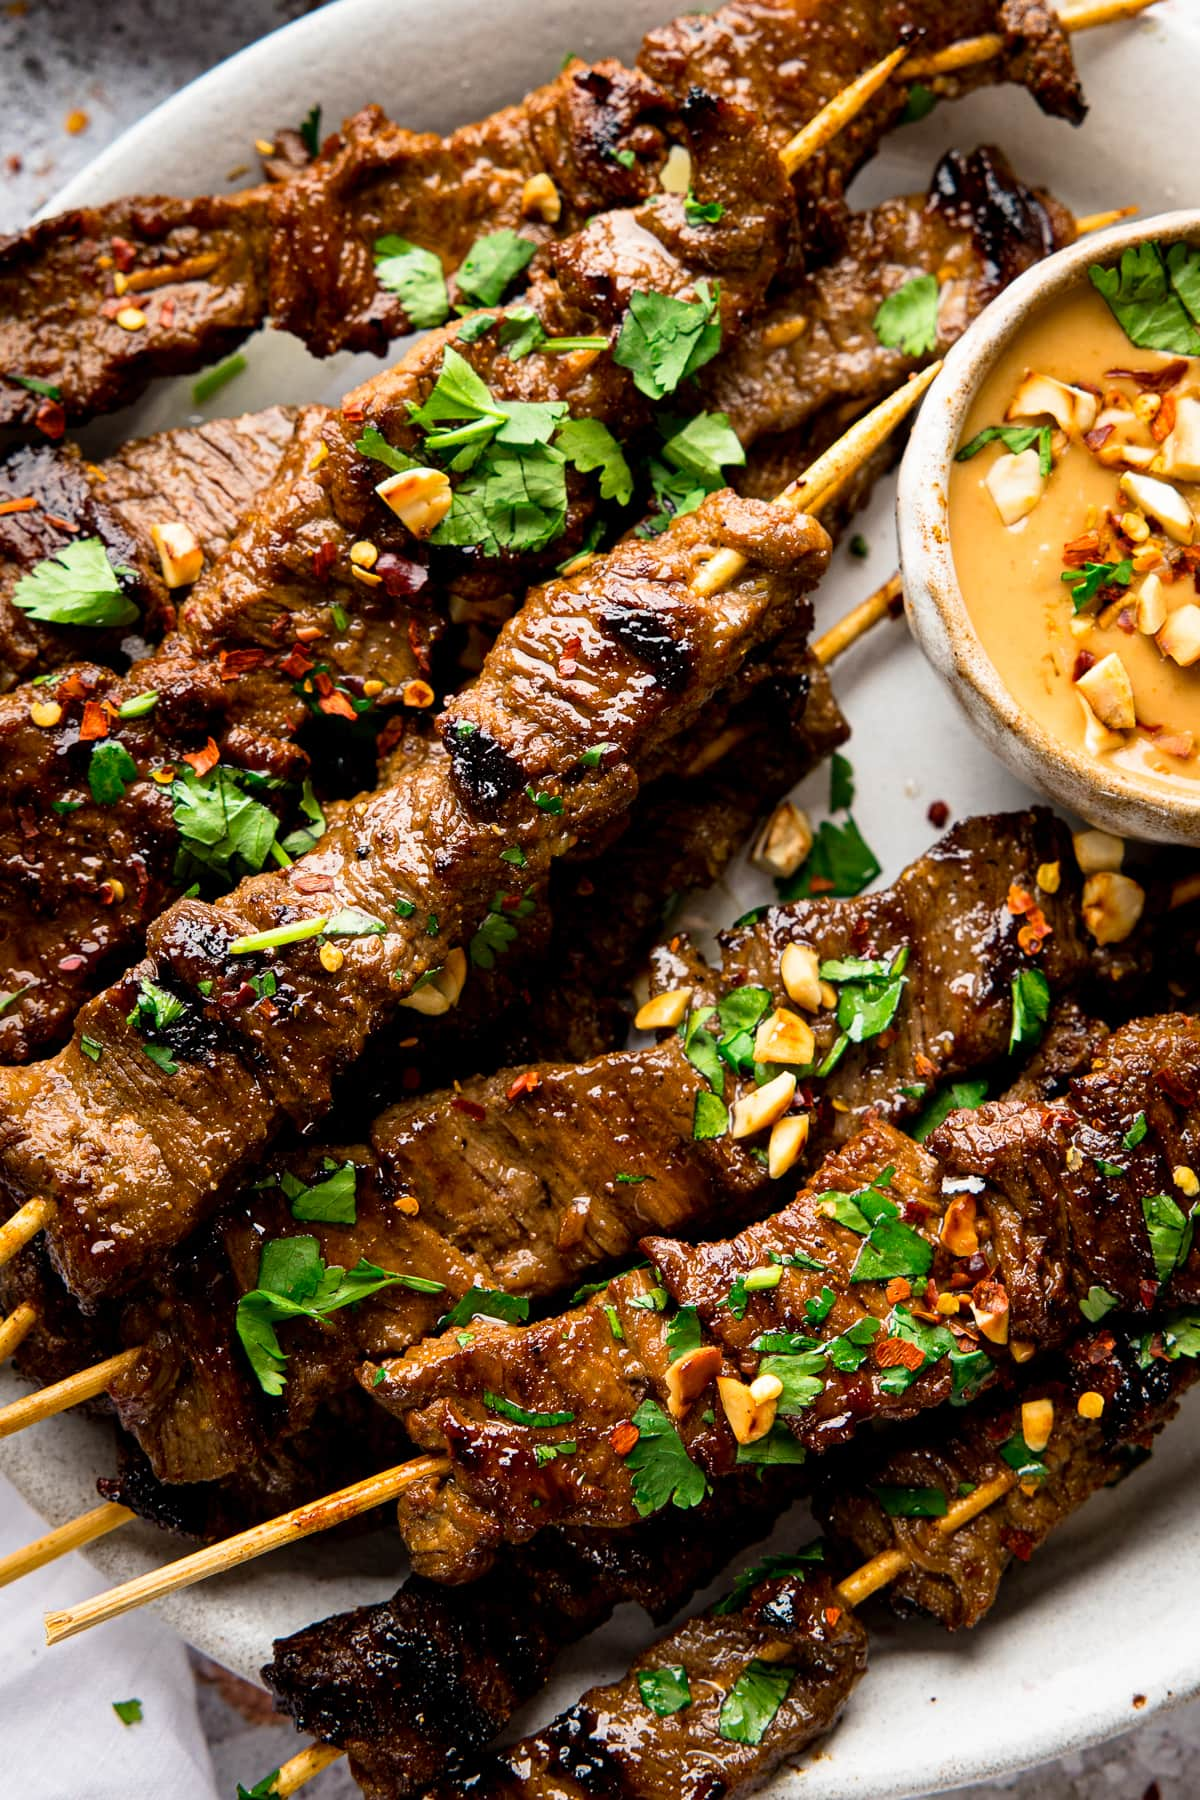 Close up of beef satay skewers on a plate, topped with coriander and peanuts